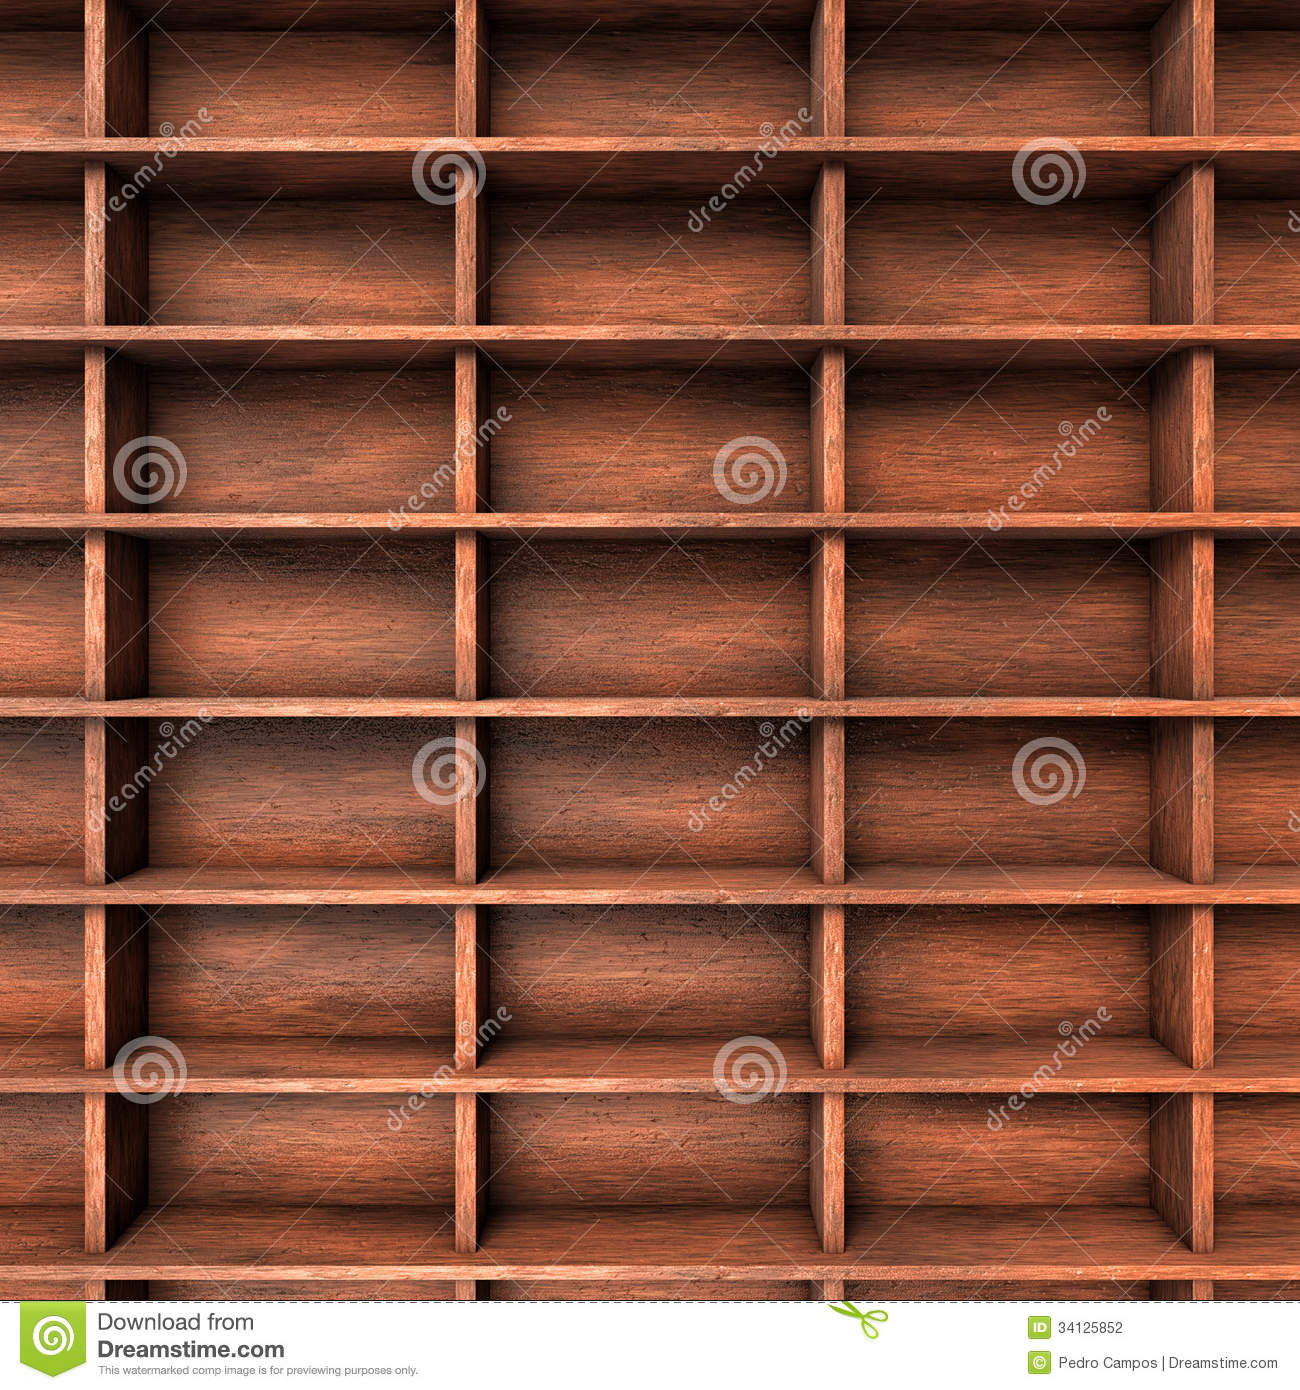 Wood Shelves Slots Stock Photography - Image: 34125852